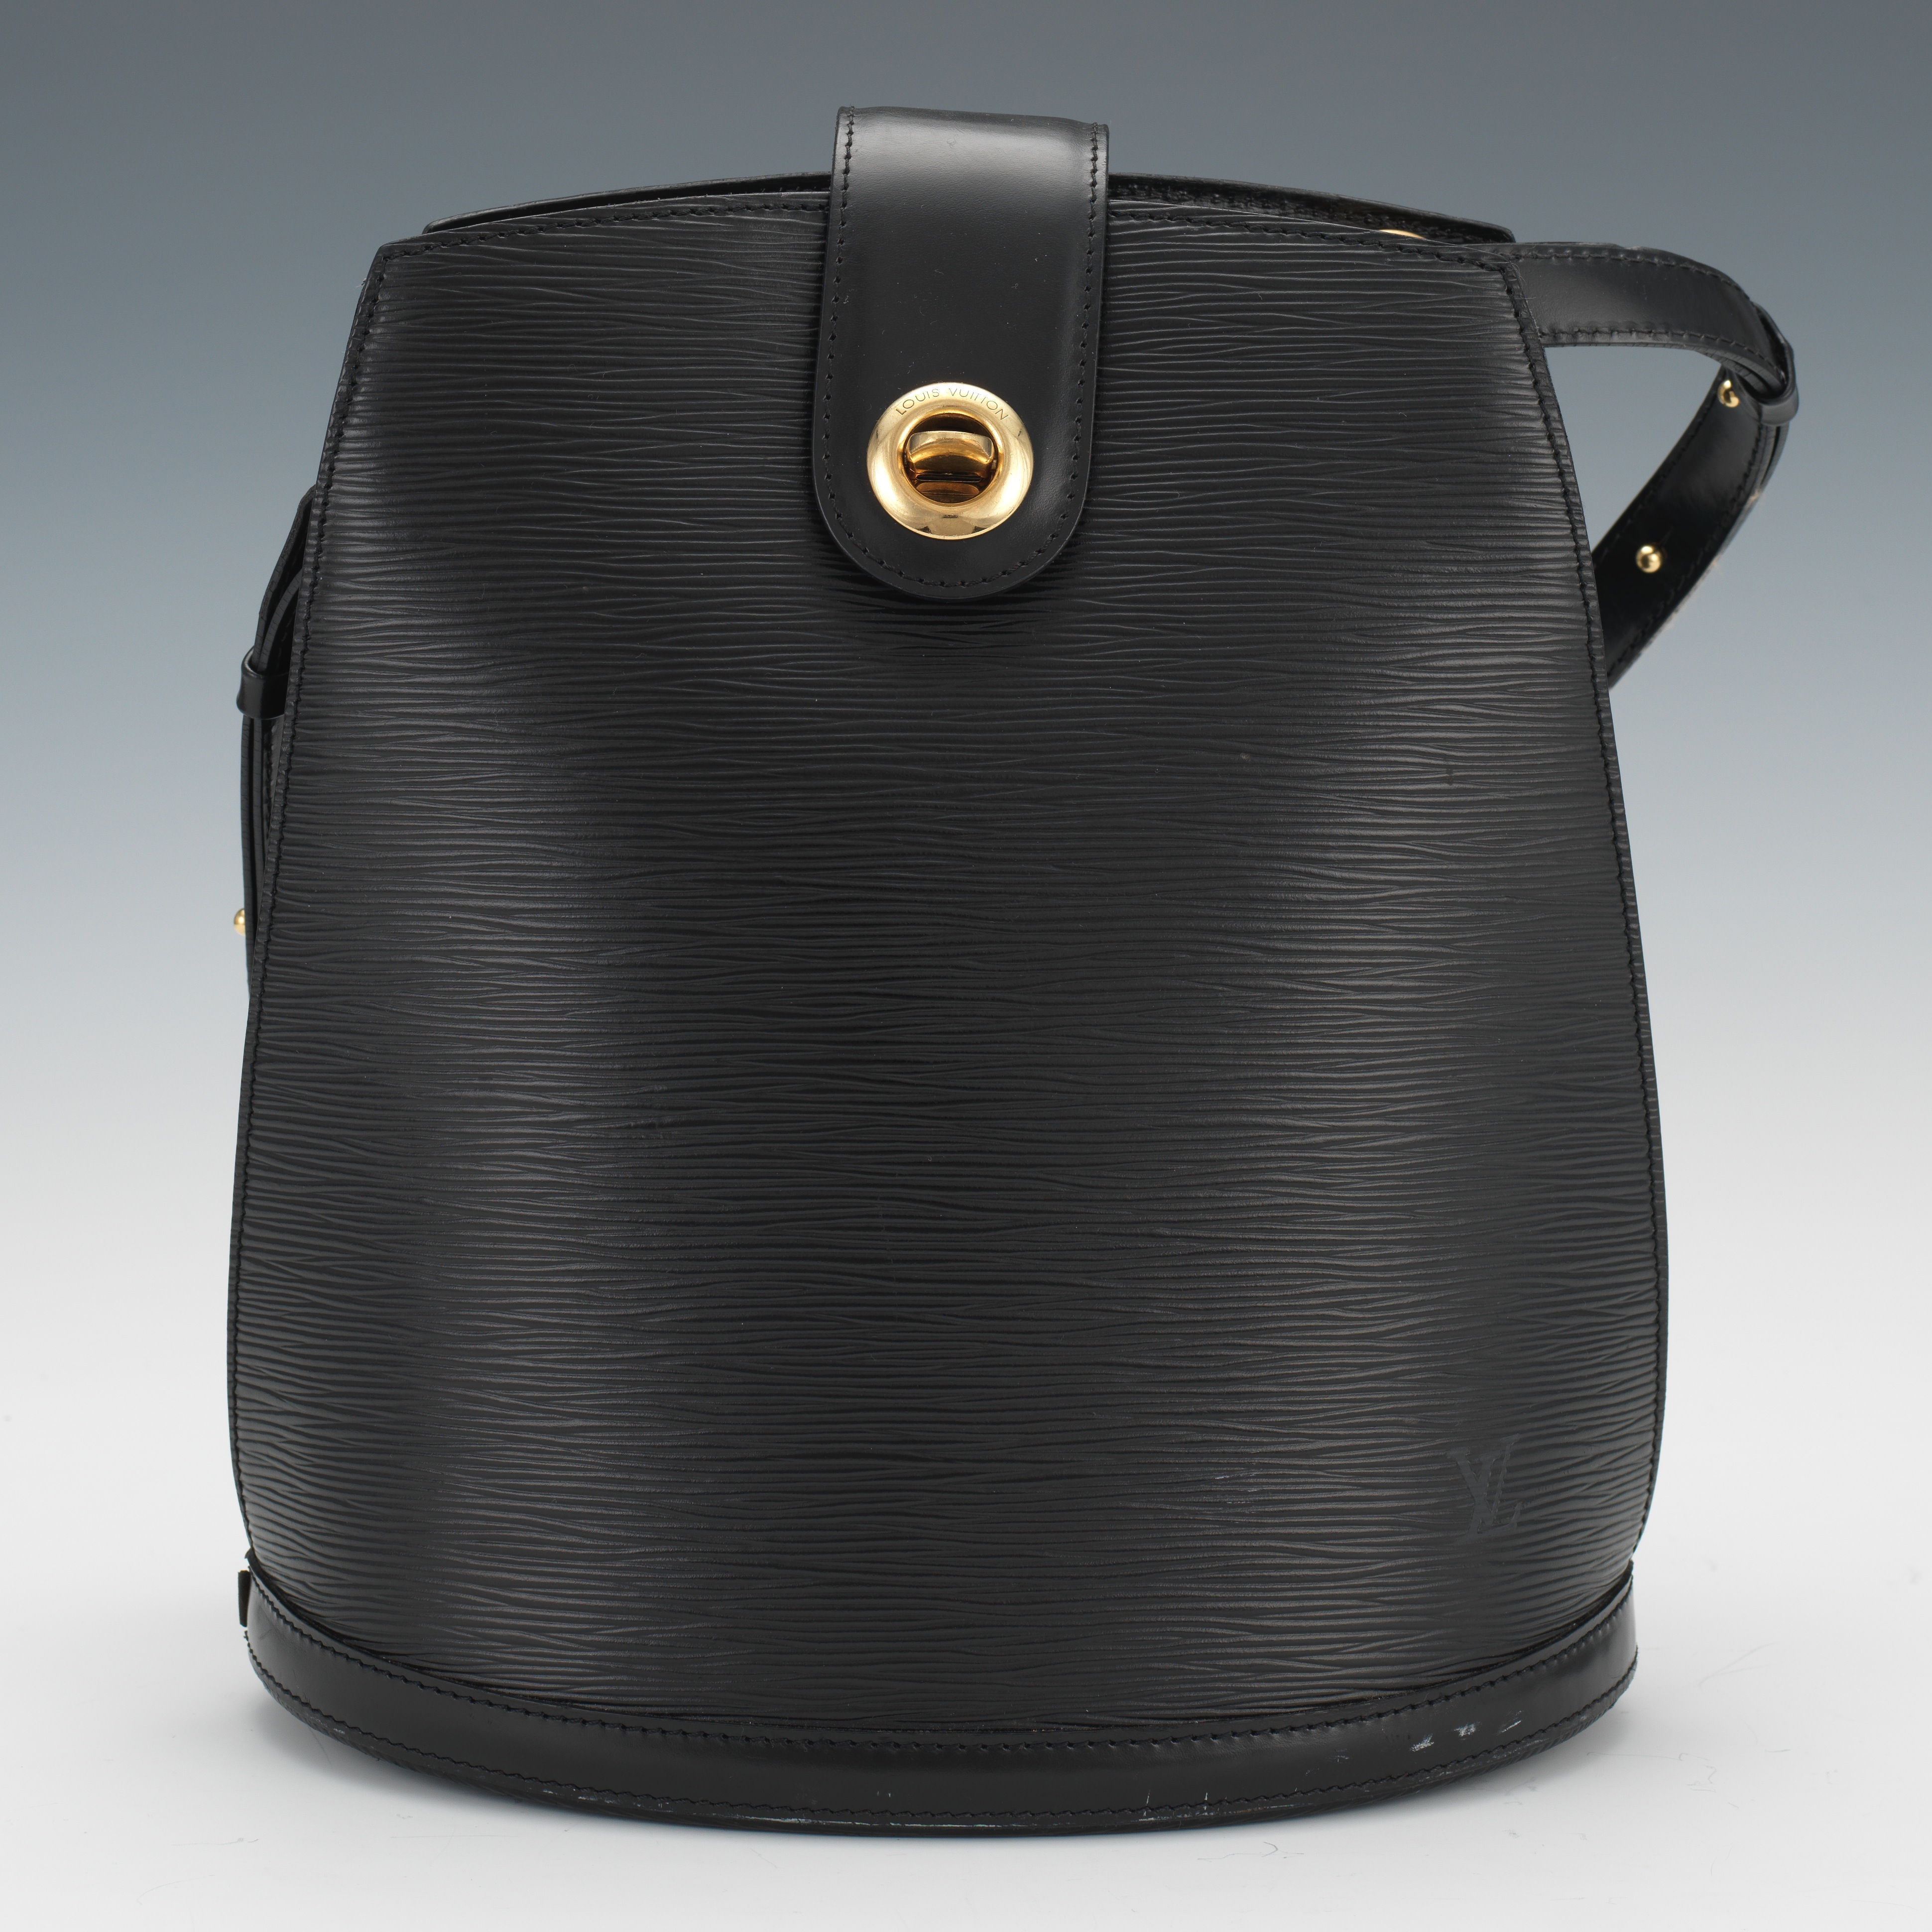 Another Louis Vuitton Epi Leather